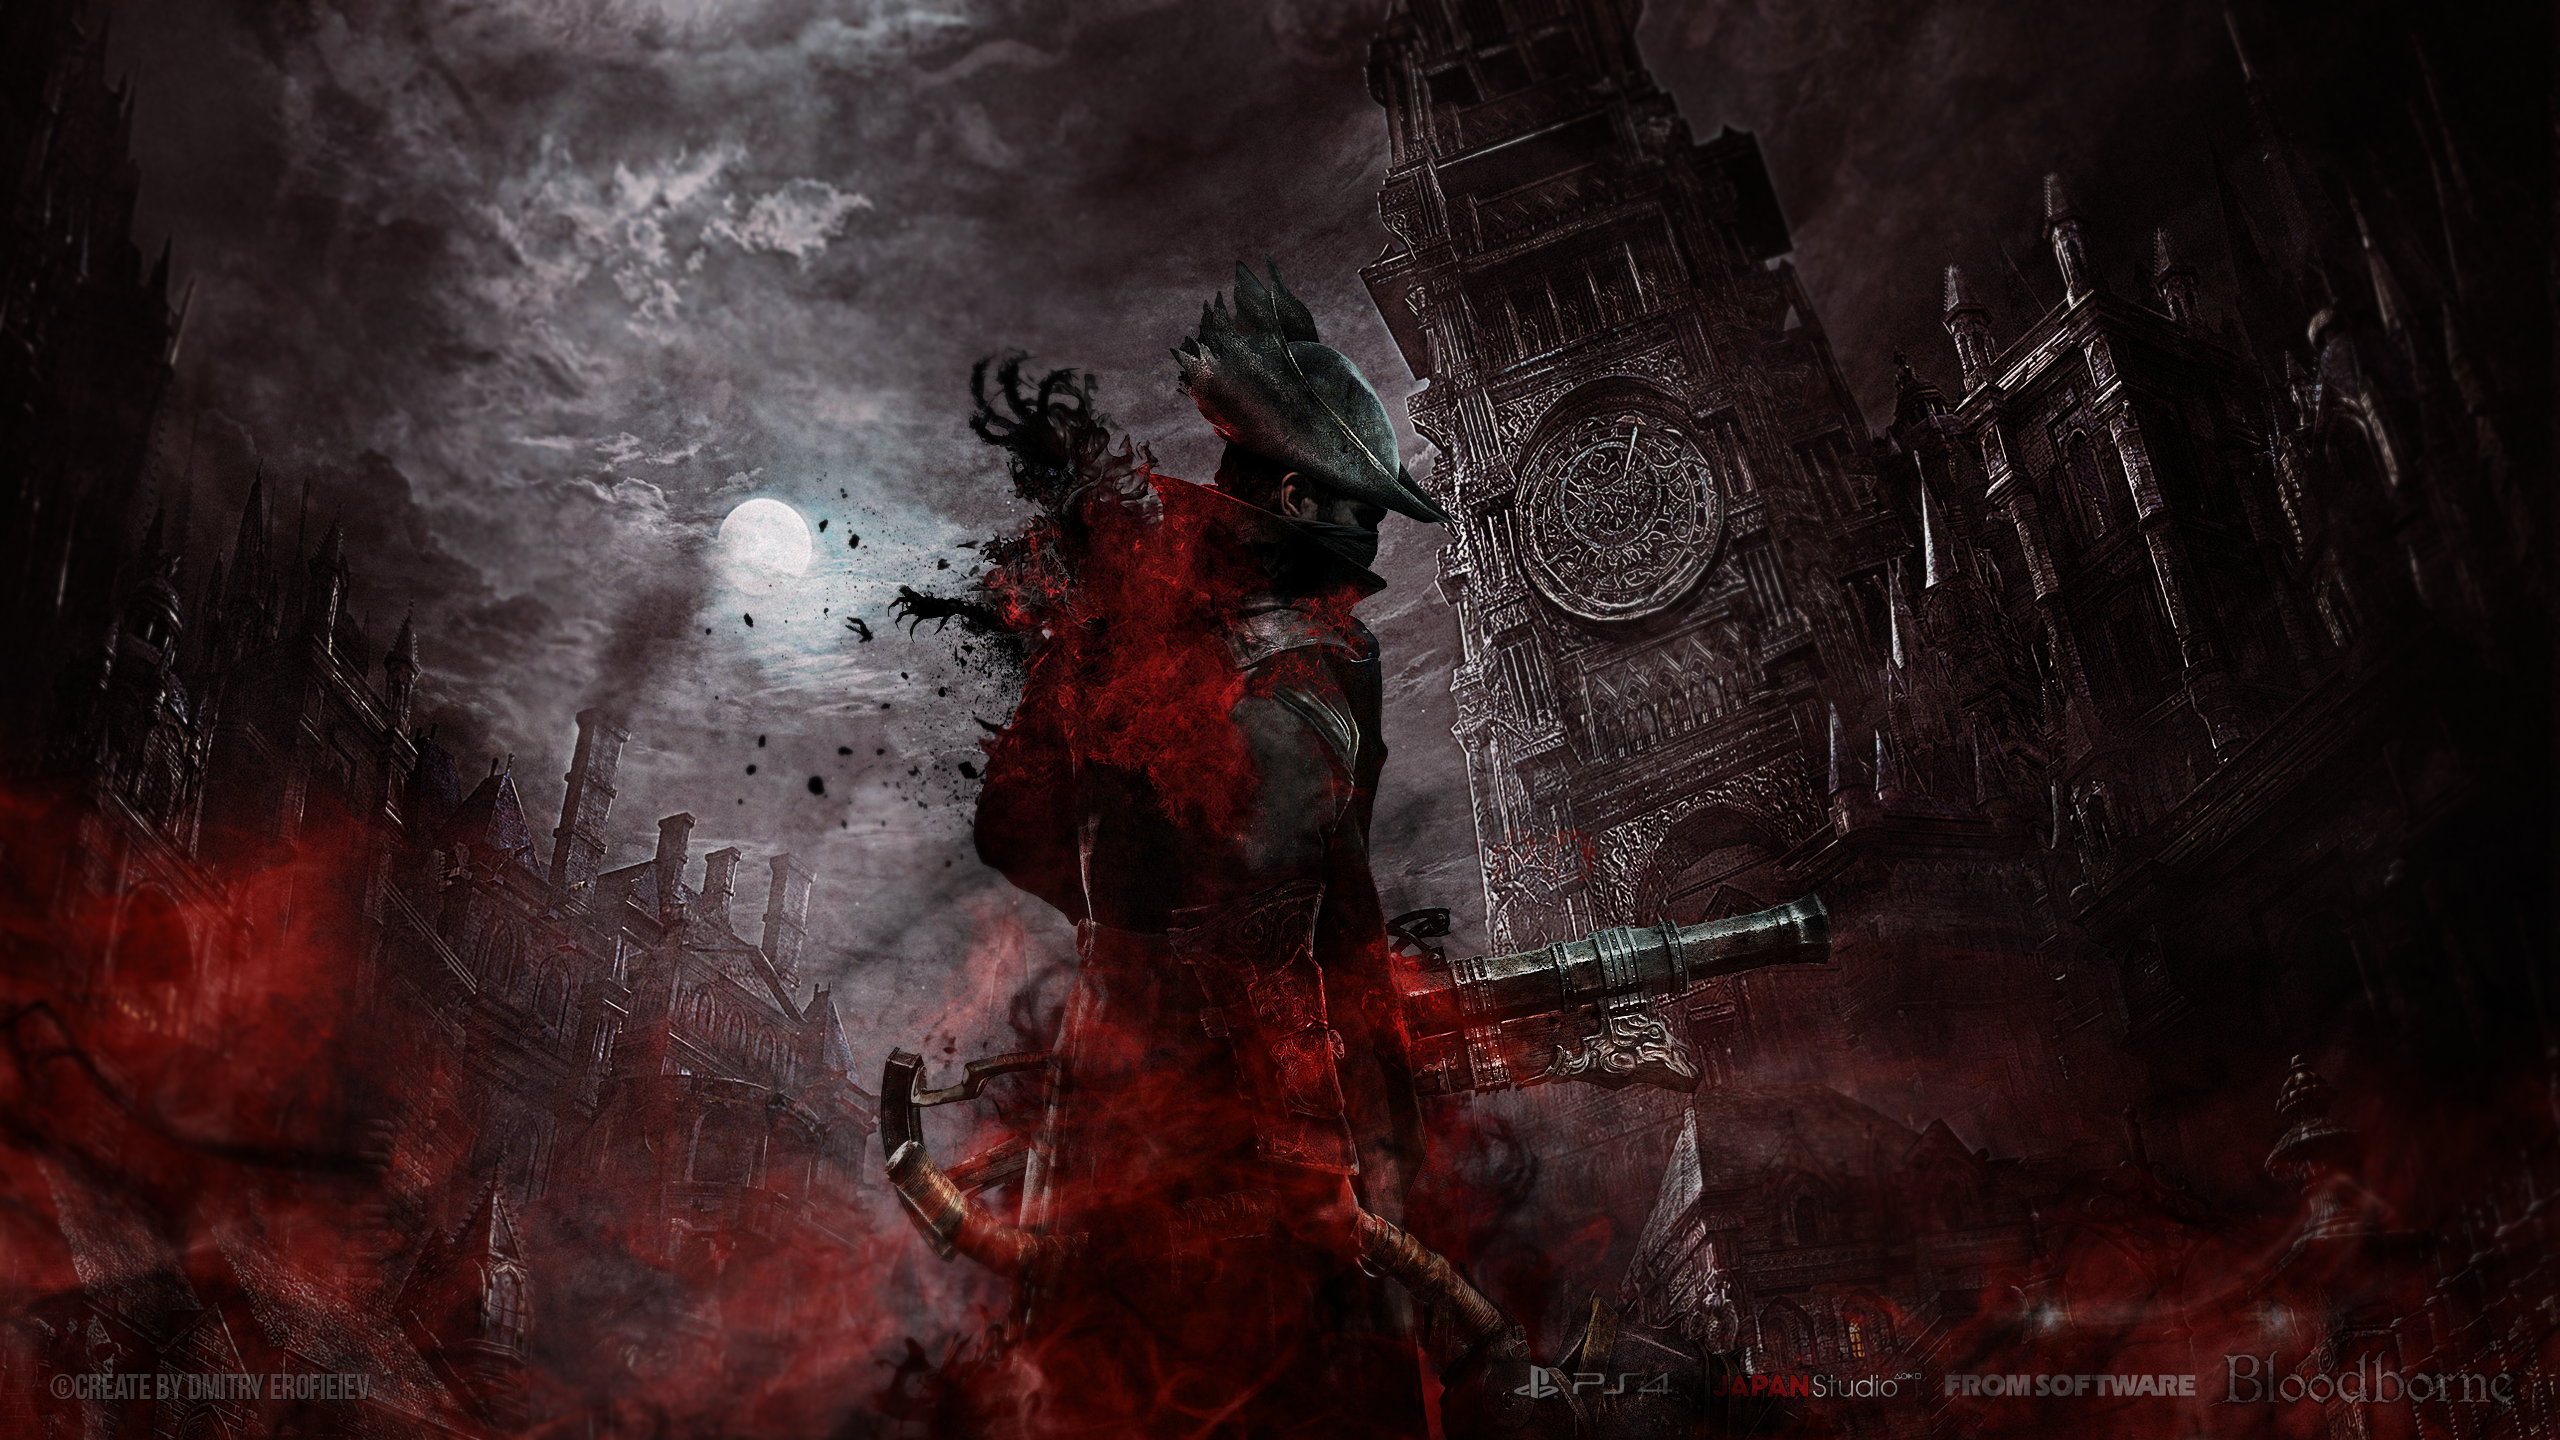 High Resolution Gaming Wallpapers: 10+ Bloodborne Game High Quality Wallpapers